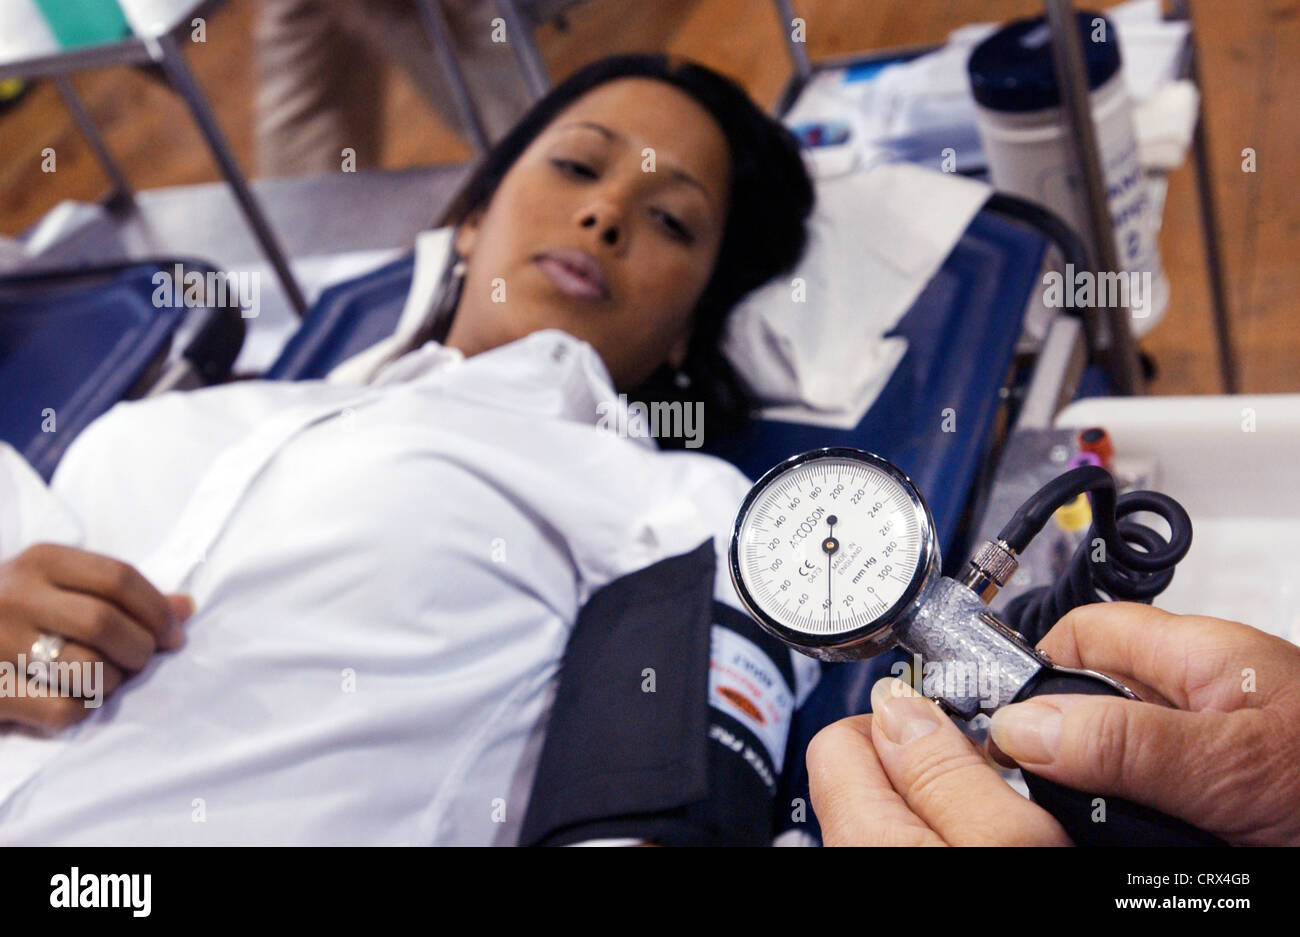 NHS National Blood Service nurse checks the blood pressure of a young female donor with the air pump of a sphygmomanometer. - Stock Image